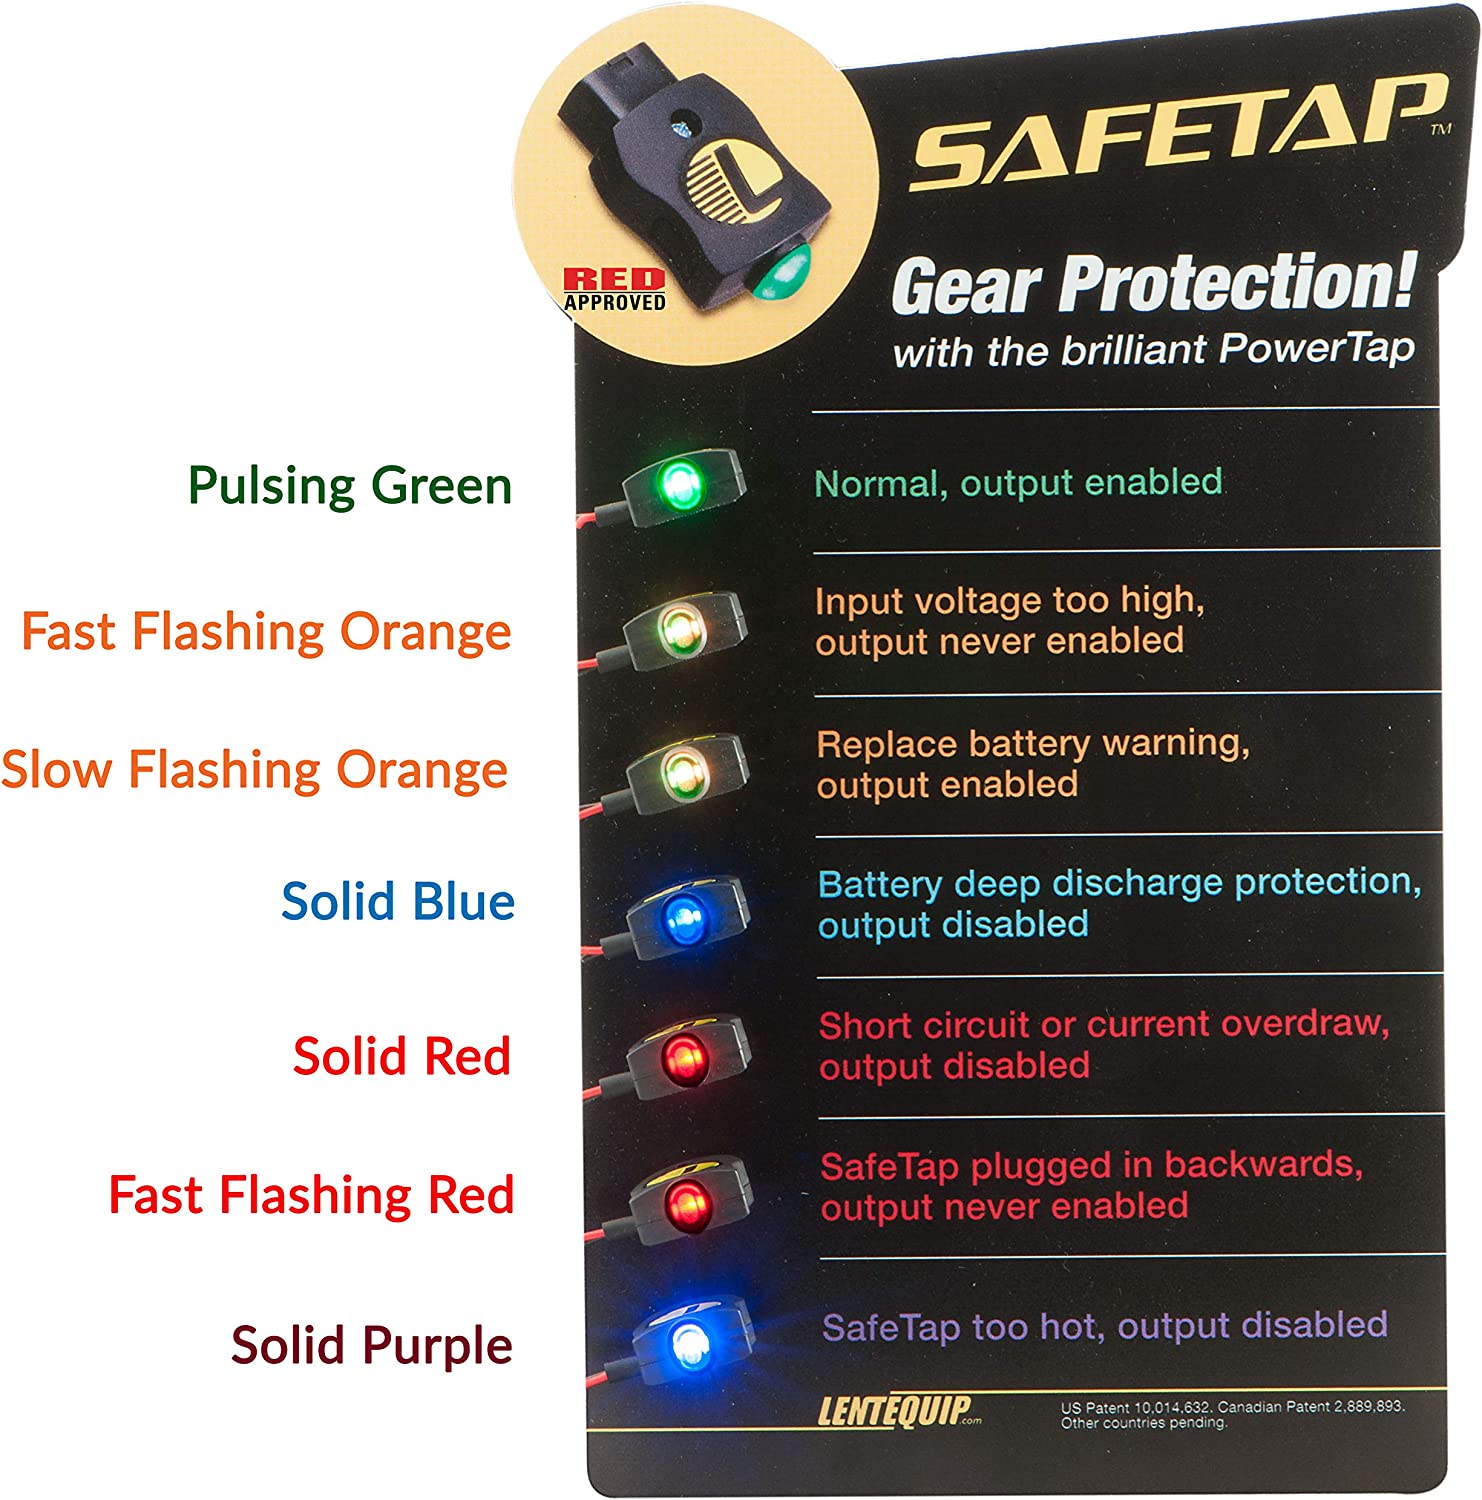 SafeTap Power Connector The one and ONLY